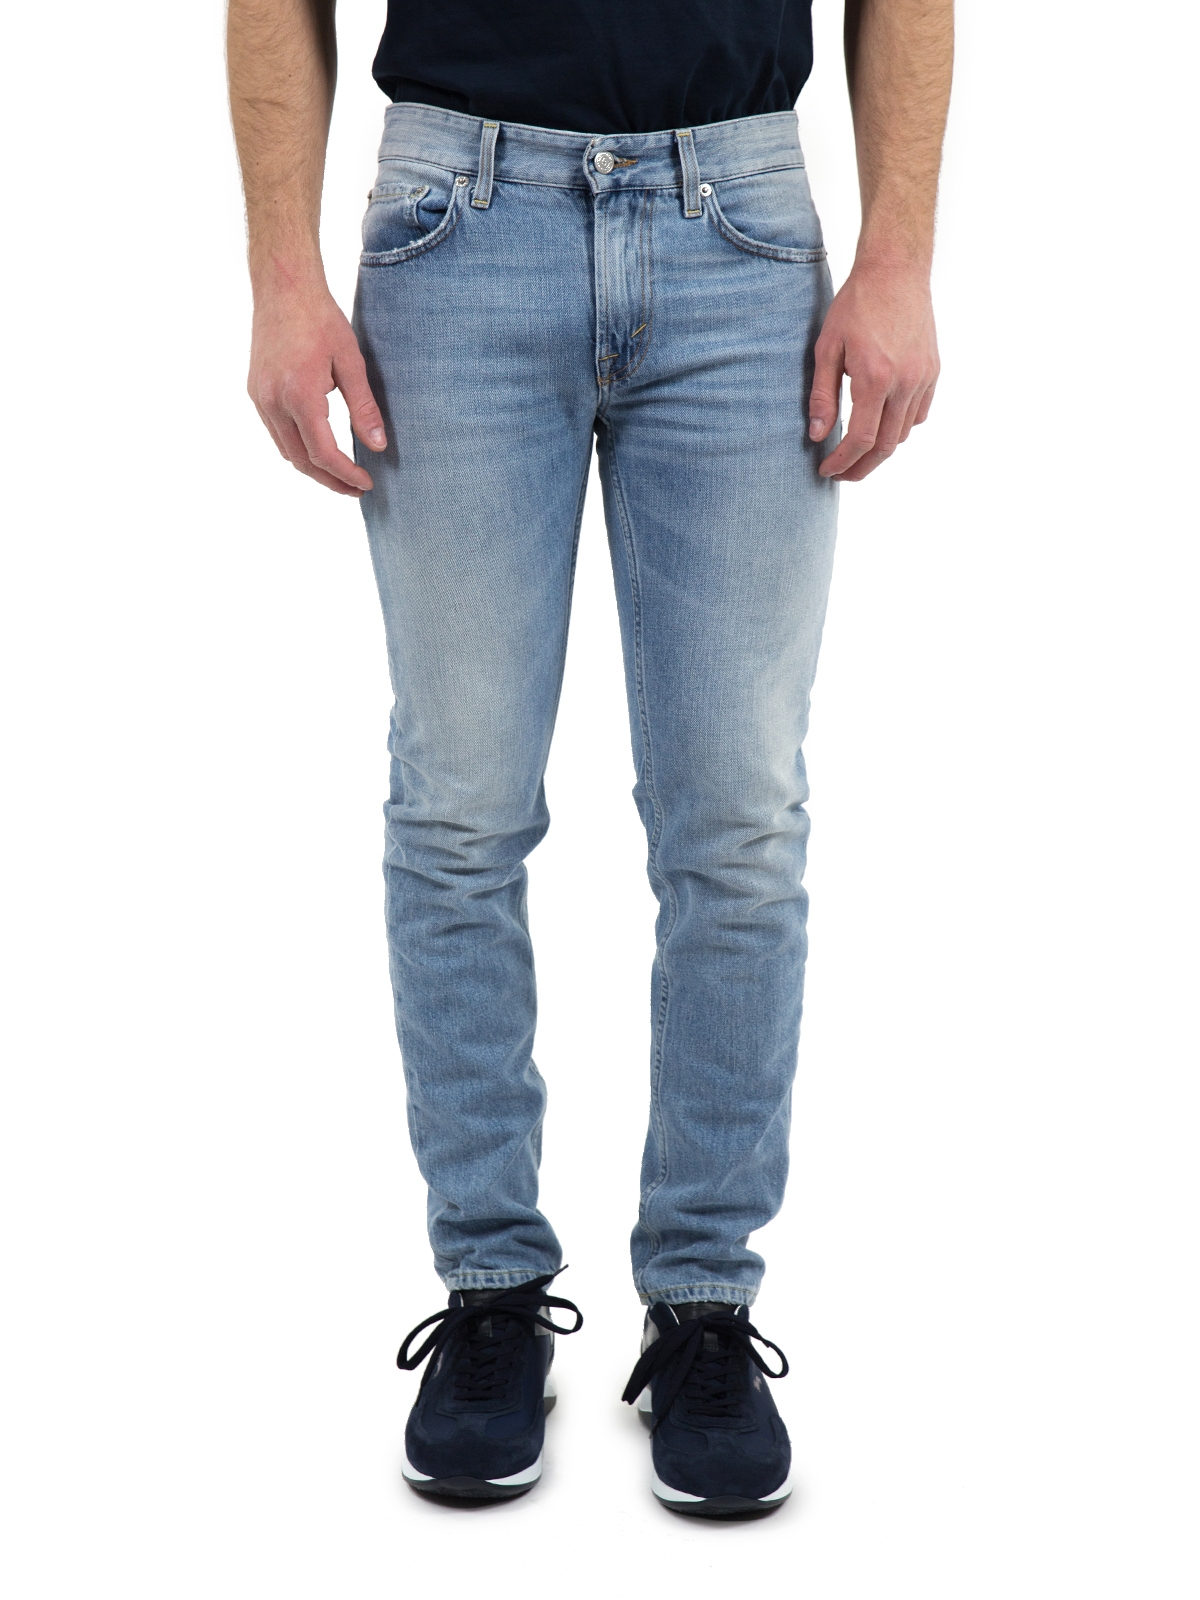 Department Five Jeans U18D11 D1808